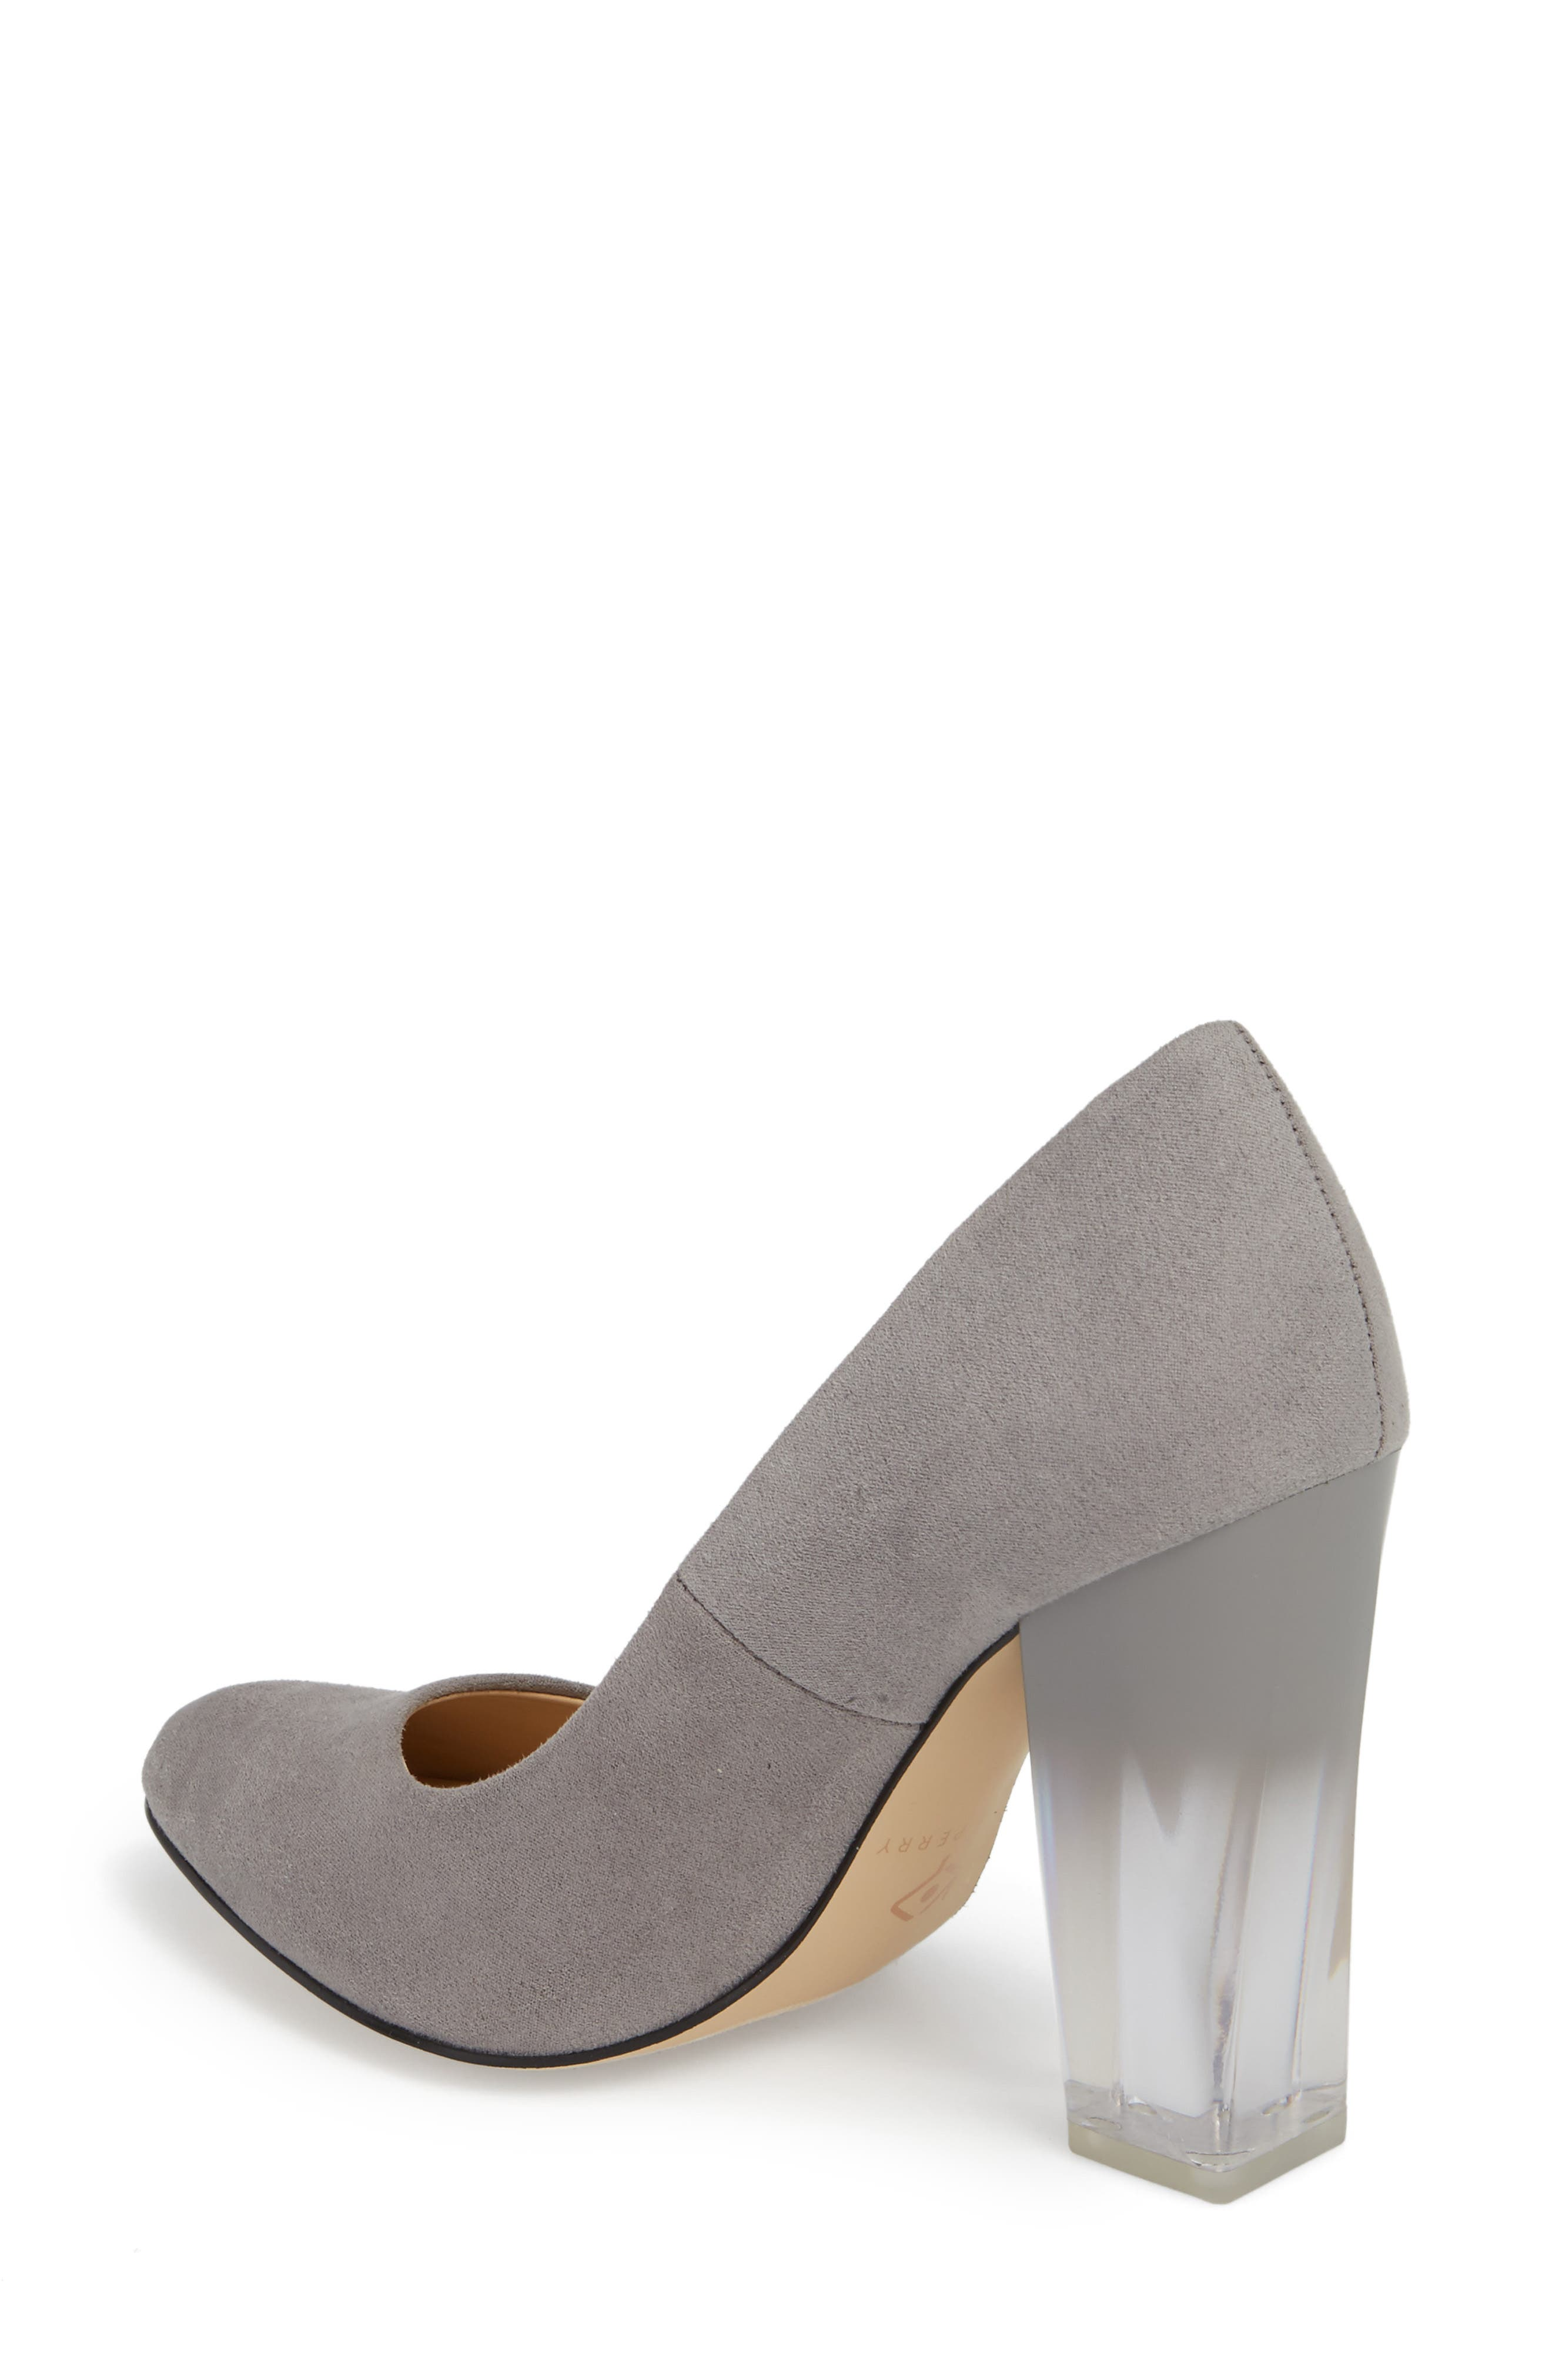 Statement Heel Pump,                             Alternate thumbnail 2, color,                             DARK NICKEL